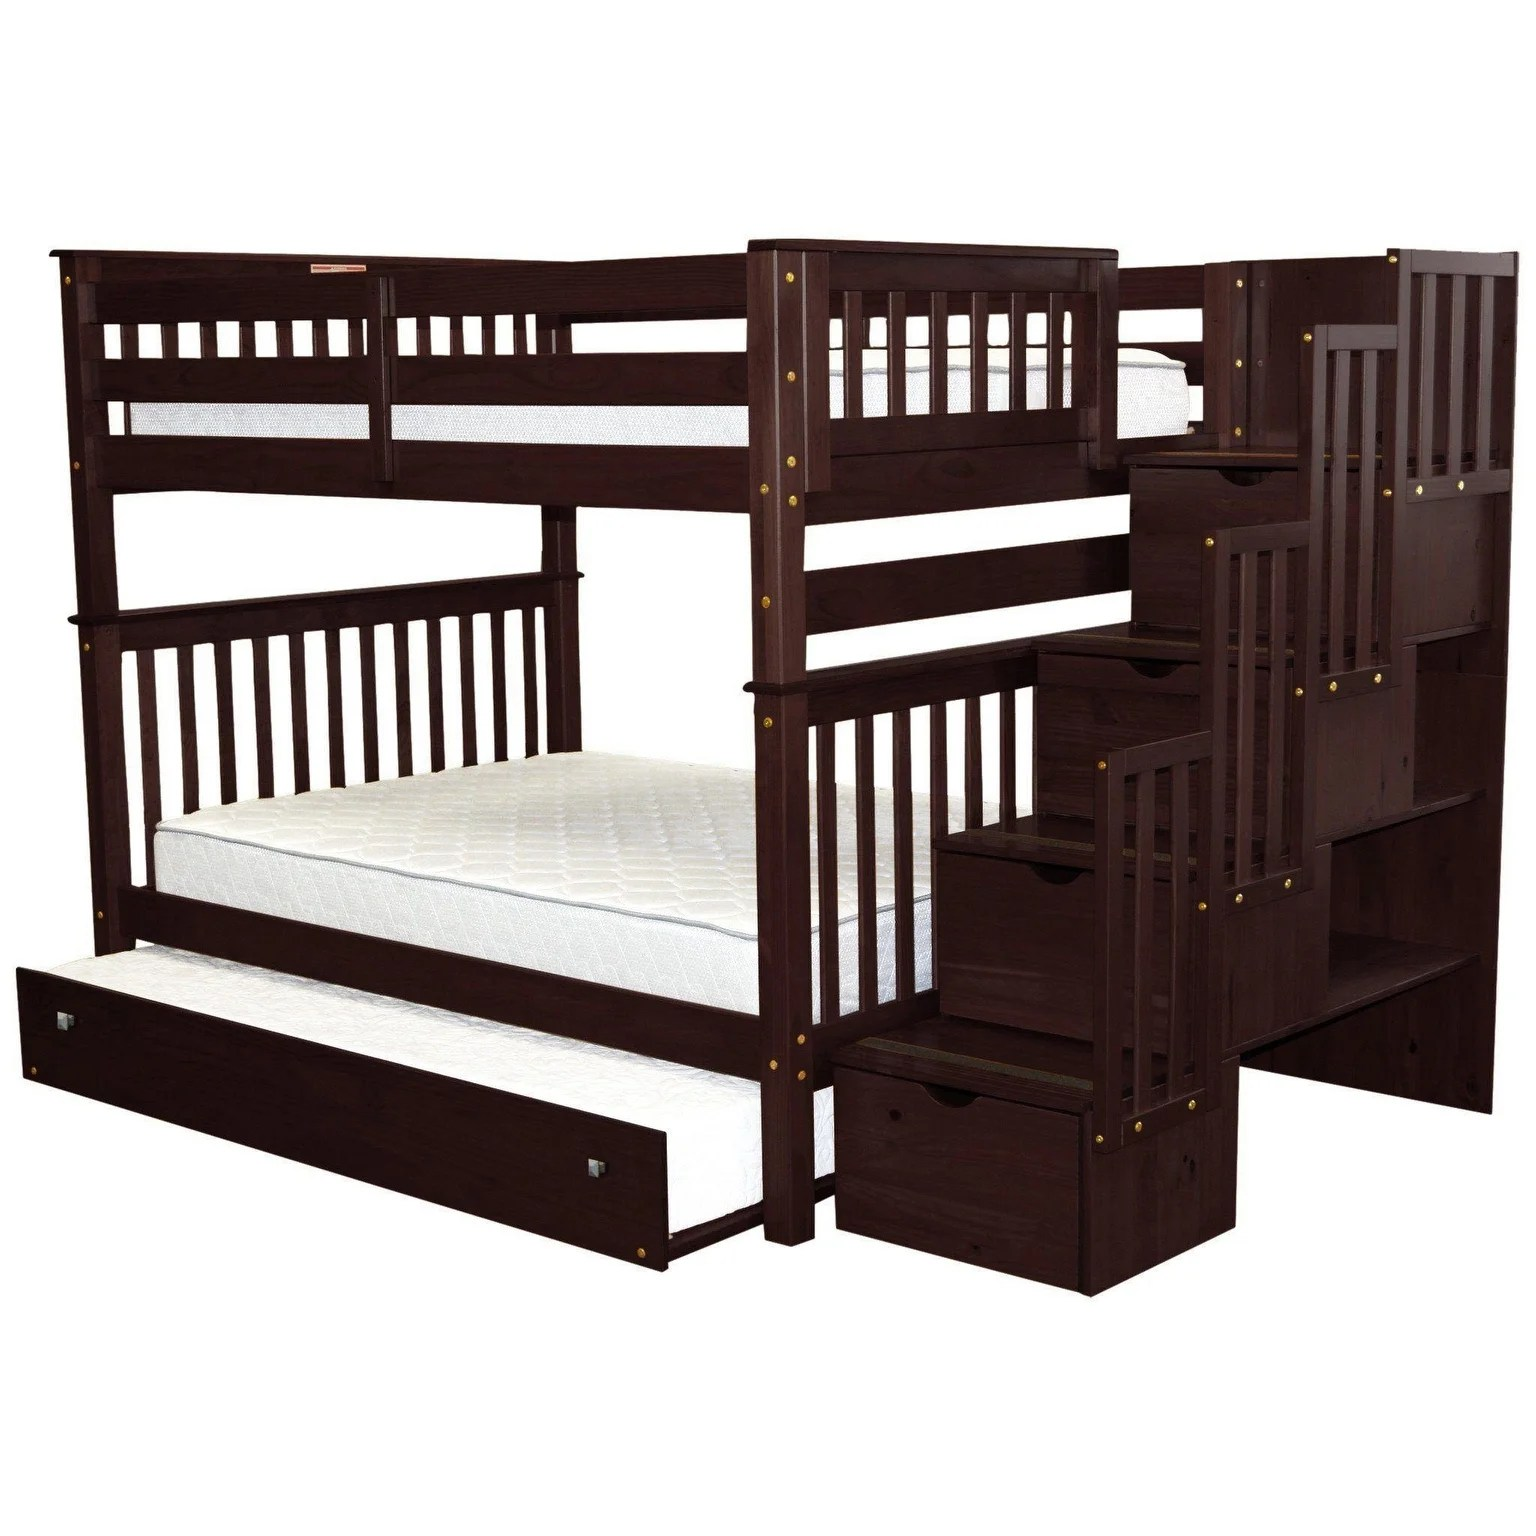 Bedz King Stairway Bunk Beds Full Over Full With 4 Drawers In The Steps And A Full Trundle Cappuccino Overstock 22087646